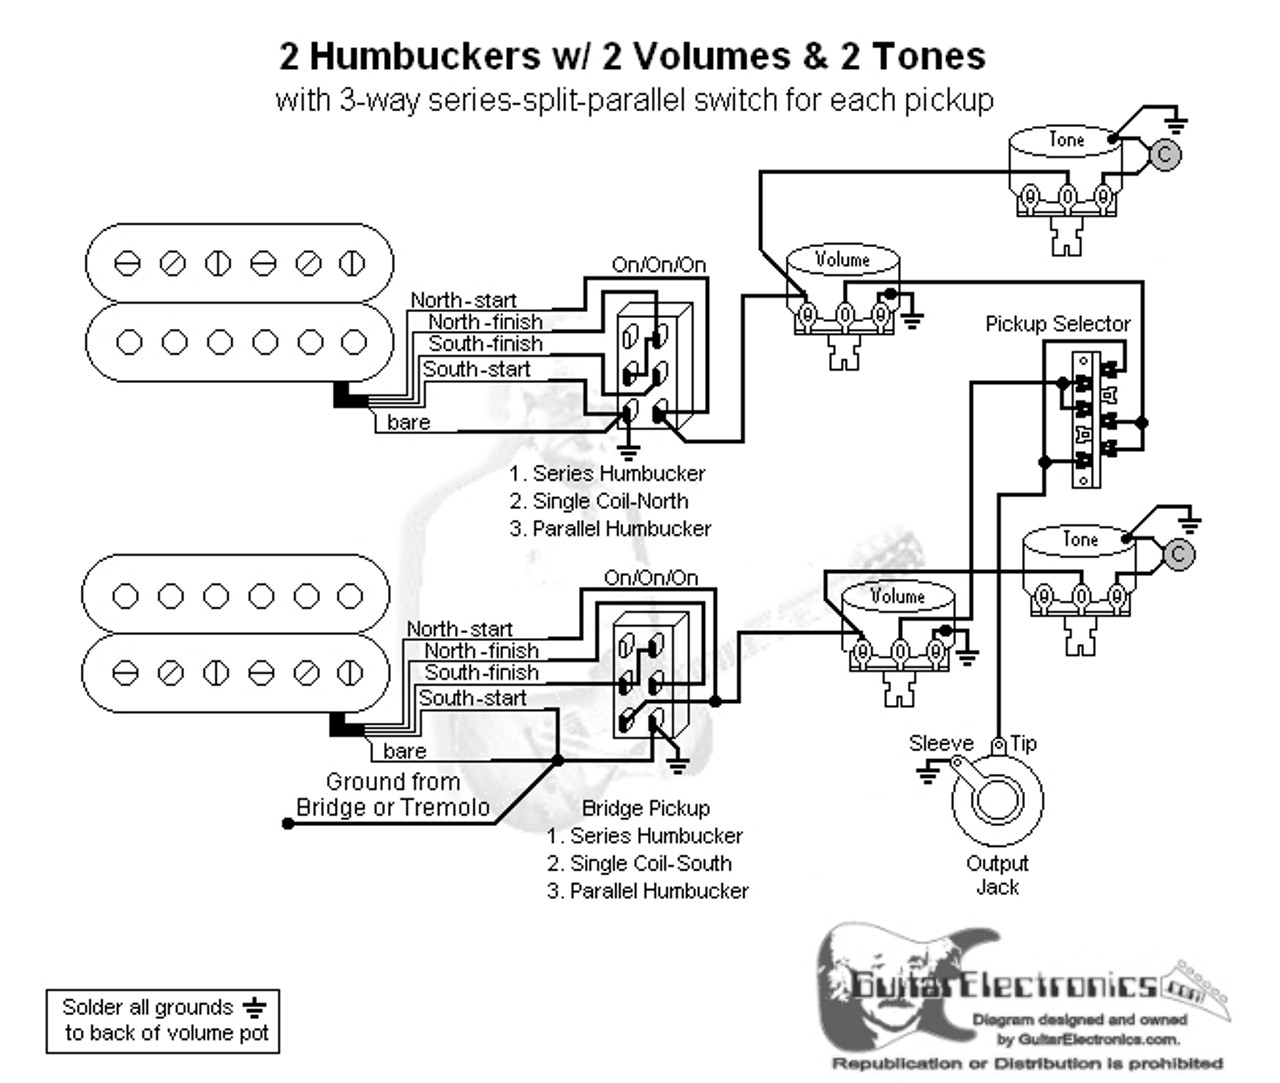 2 HBs/3-Way Lever/2 Vol/2 Tones/Series-Split-Parallel | Two Single Coil Guitar Wiring Diagram |  | Guitar Electronics